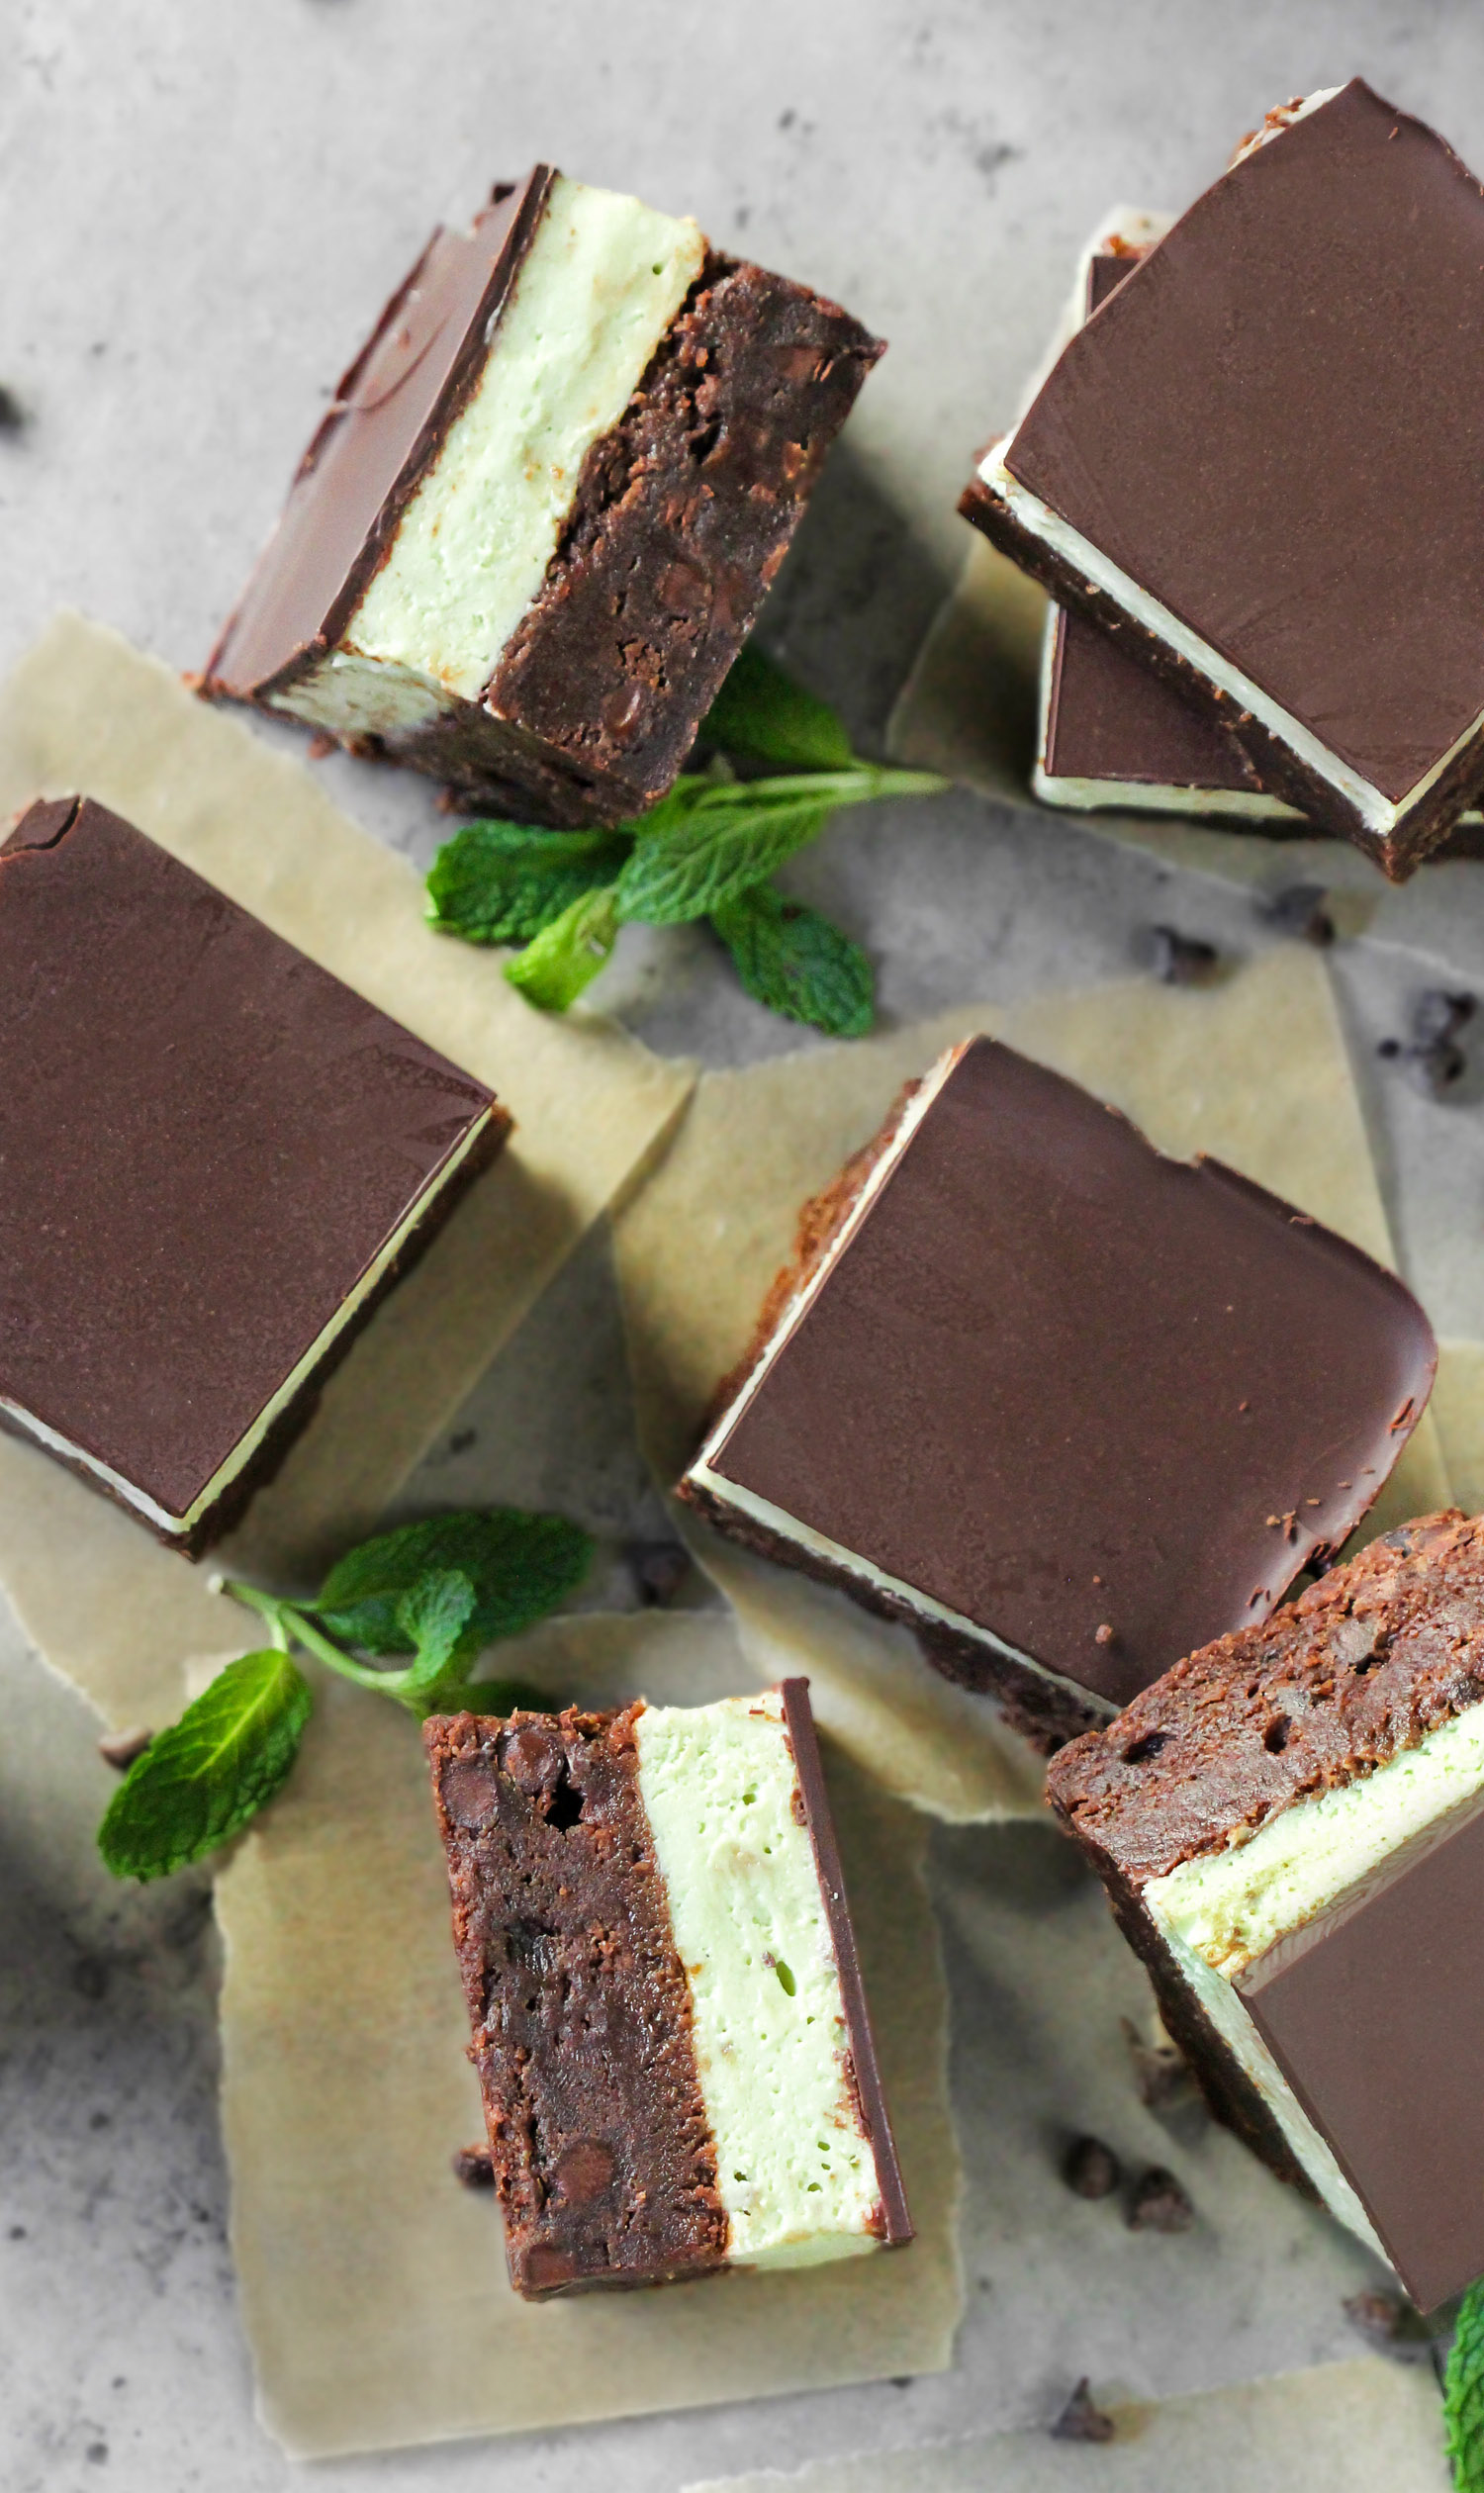 These Grasshopper Brownies are chocolatey, minty, sweet, and SUPREMELY delicious! Made with the fudgiest of the fudgy brownie base, a thick layer of mint frosting, and the perfect amount of dark chocolate to top everything off. This is one incredible, if not mind-blowing, dessert! Healthy Dessert Recipes at the Desserts With Benefits Blog (www.DessertsWithBenefits.com)